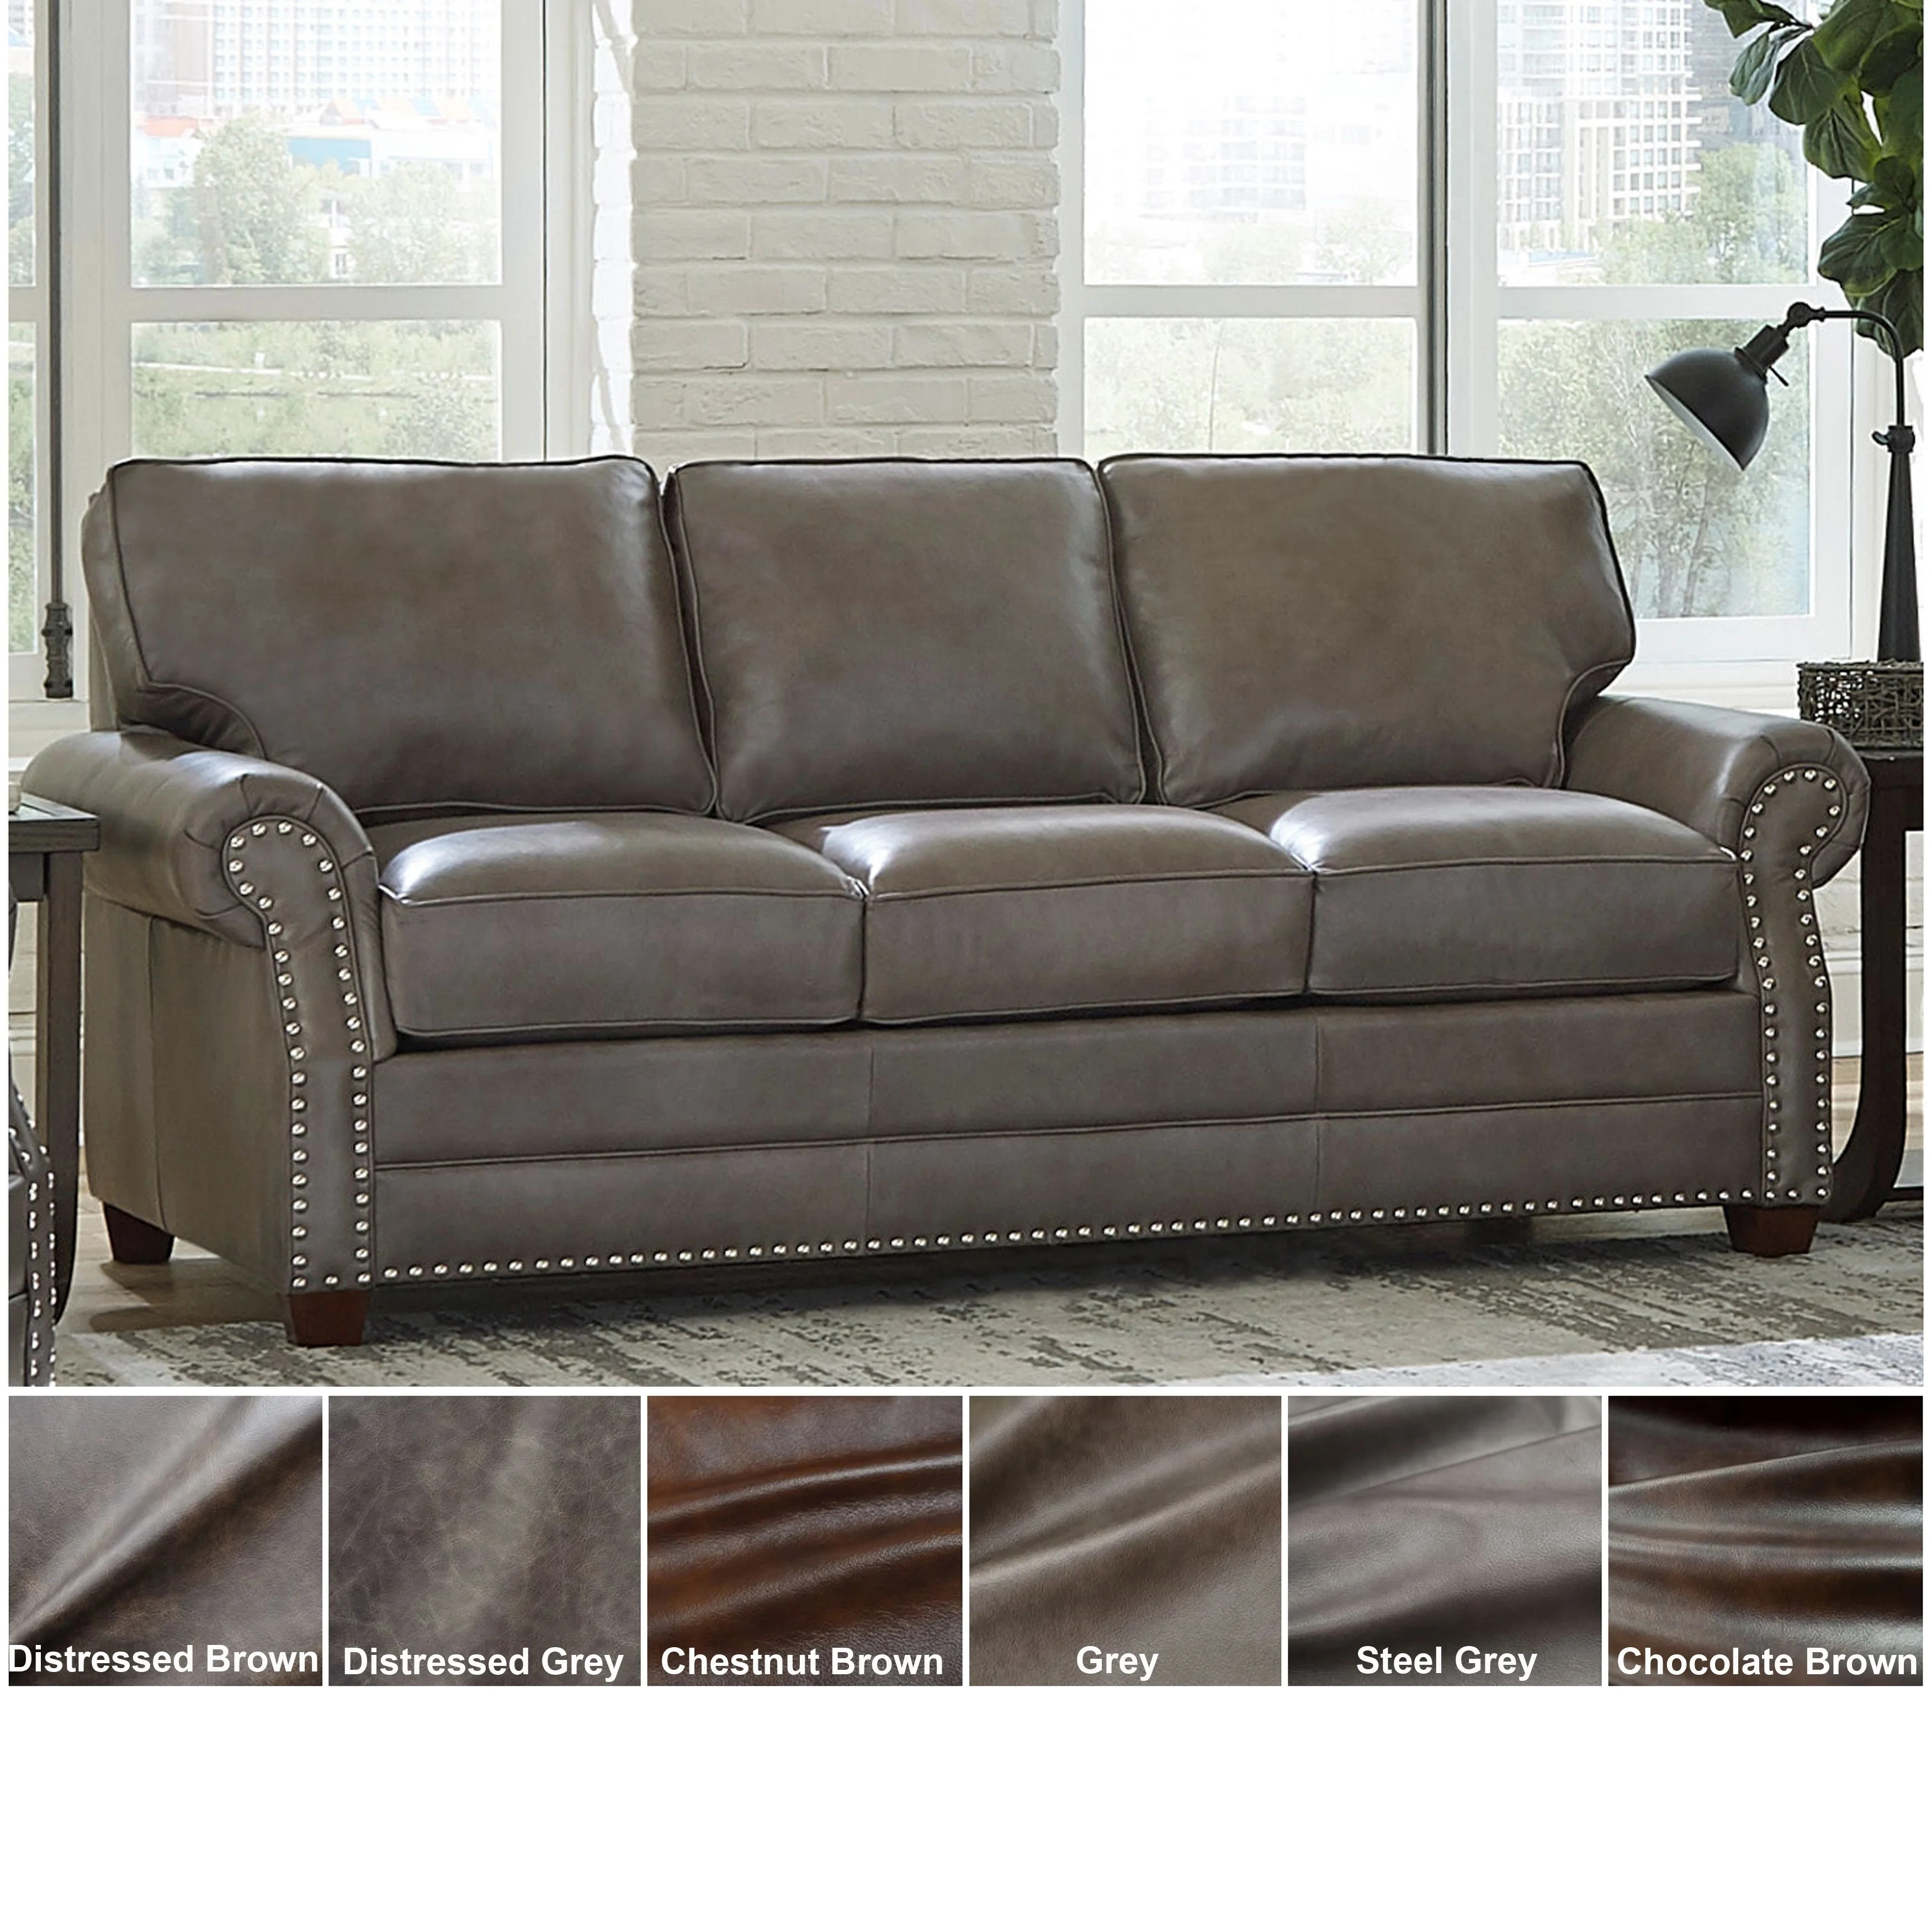 Barlow White Leather Sofa And Loveseat Set Buy Rolled Arms Leather Sofas Couches Online At Overstock Our